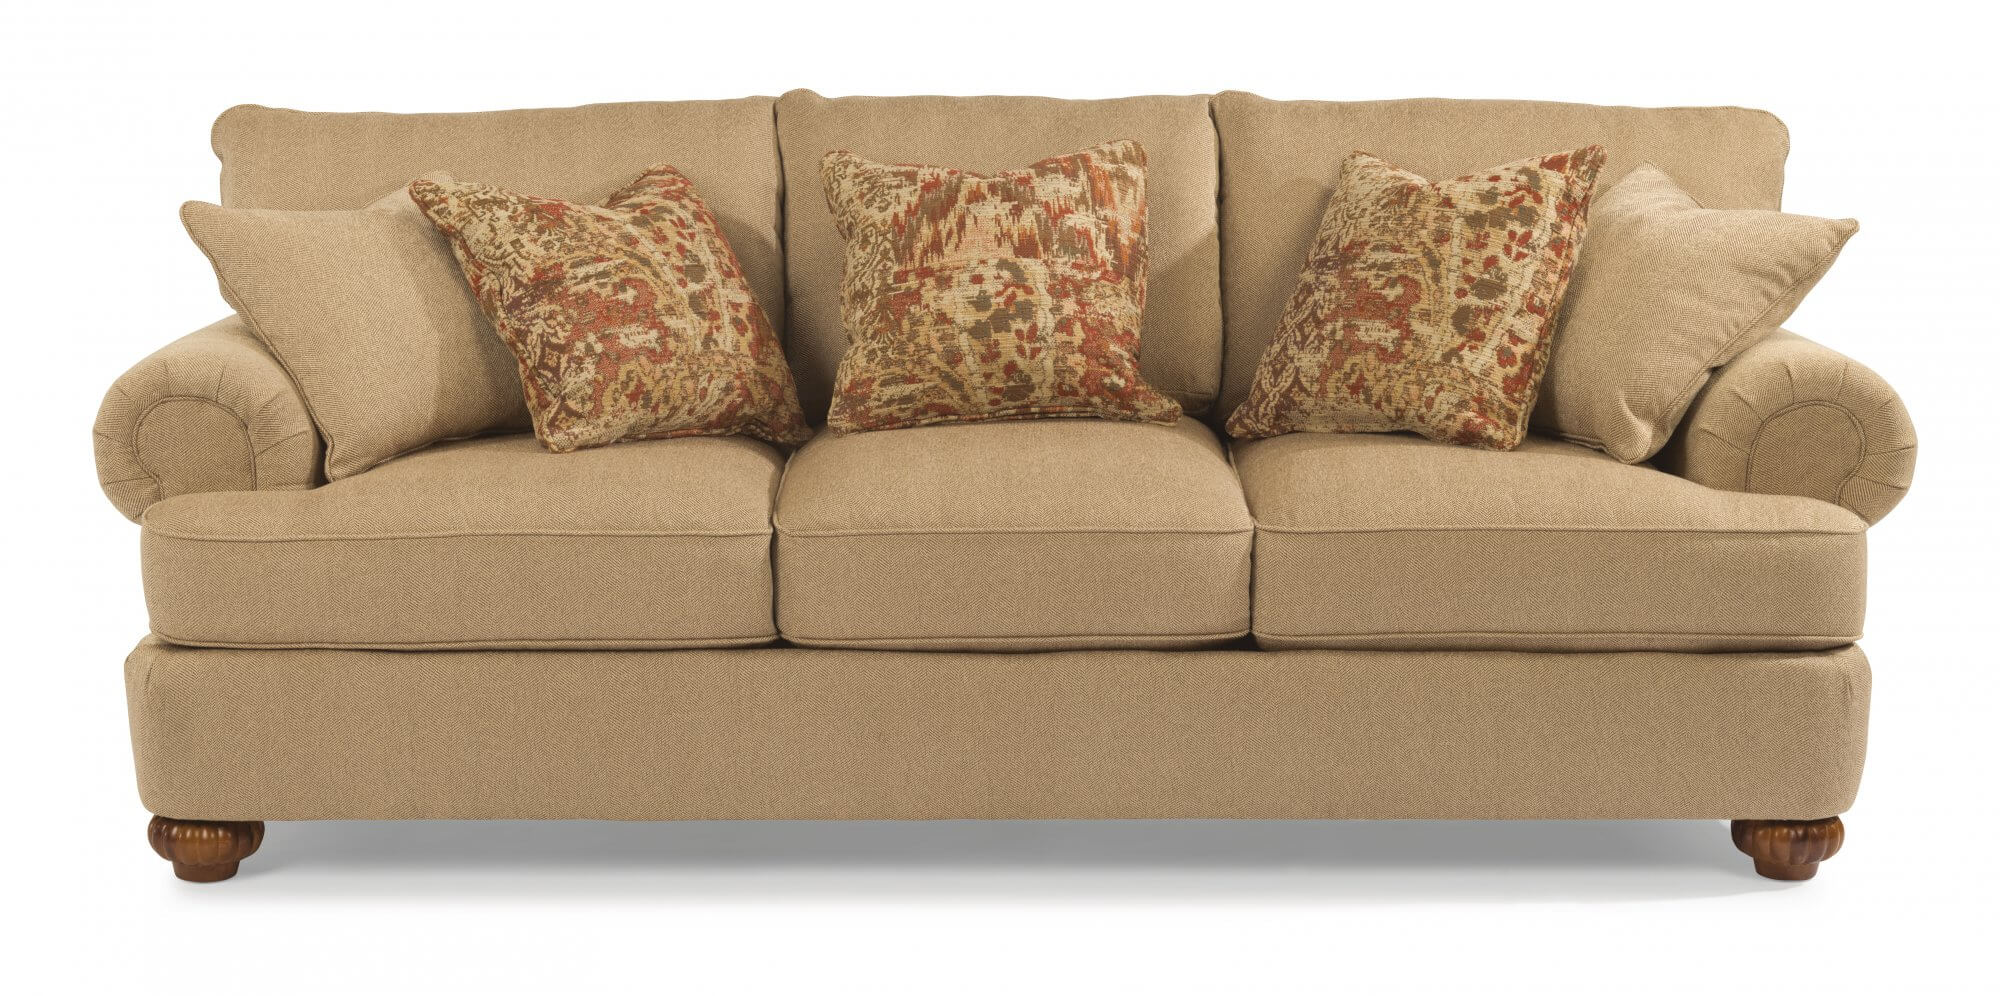 Patterson Sofa Bedrooms Amp More Seattle